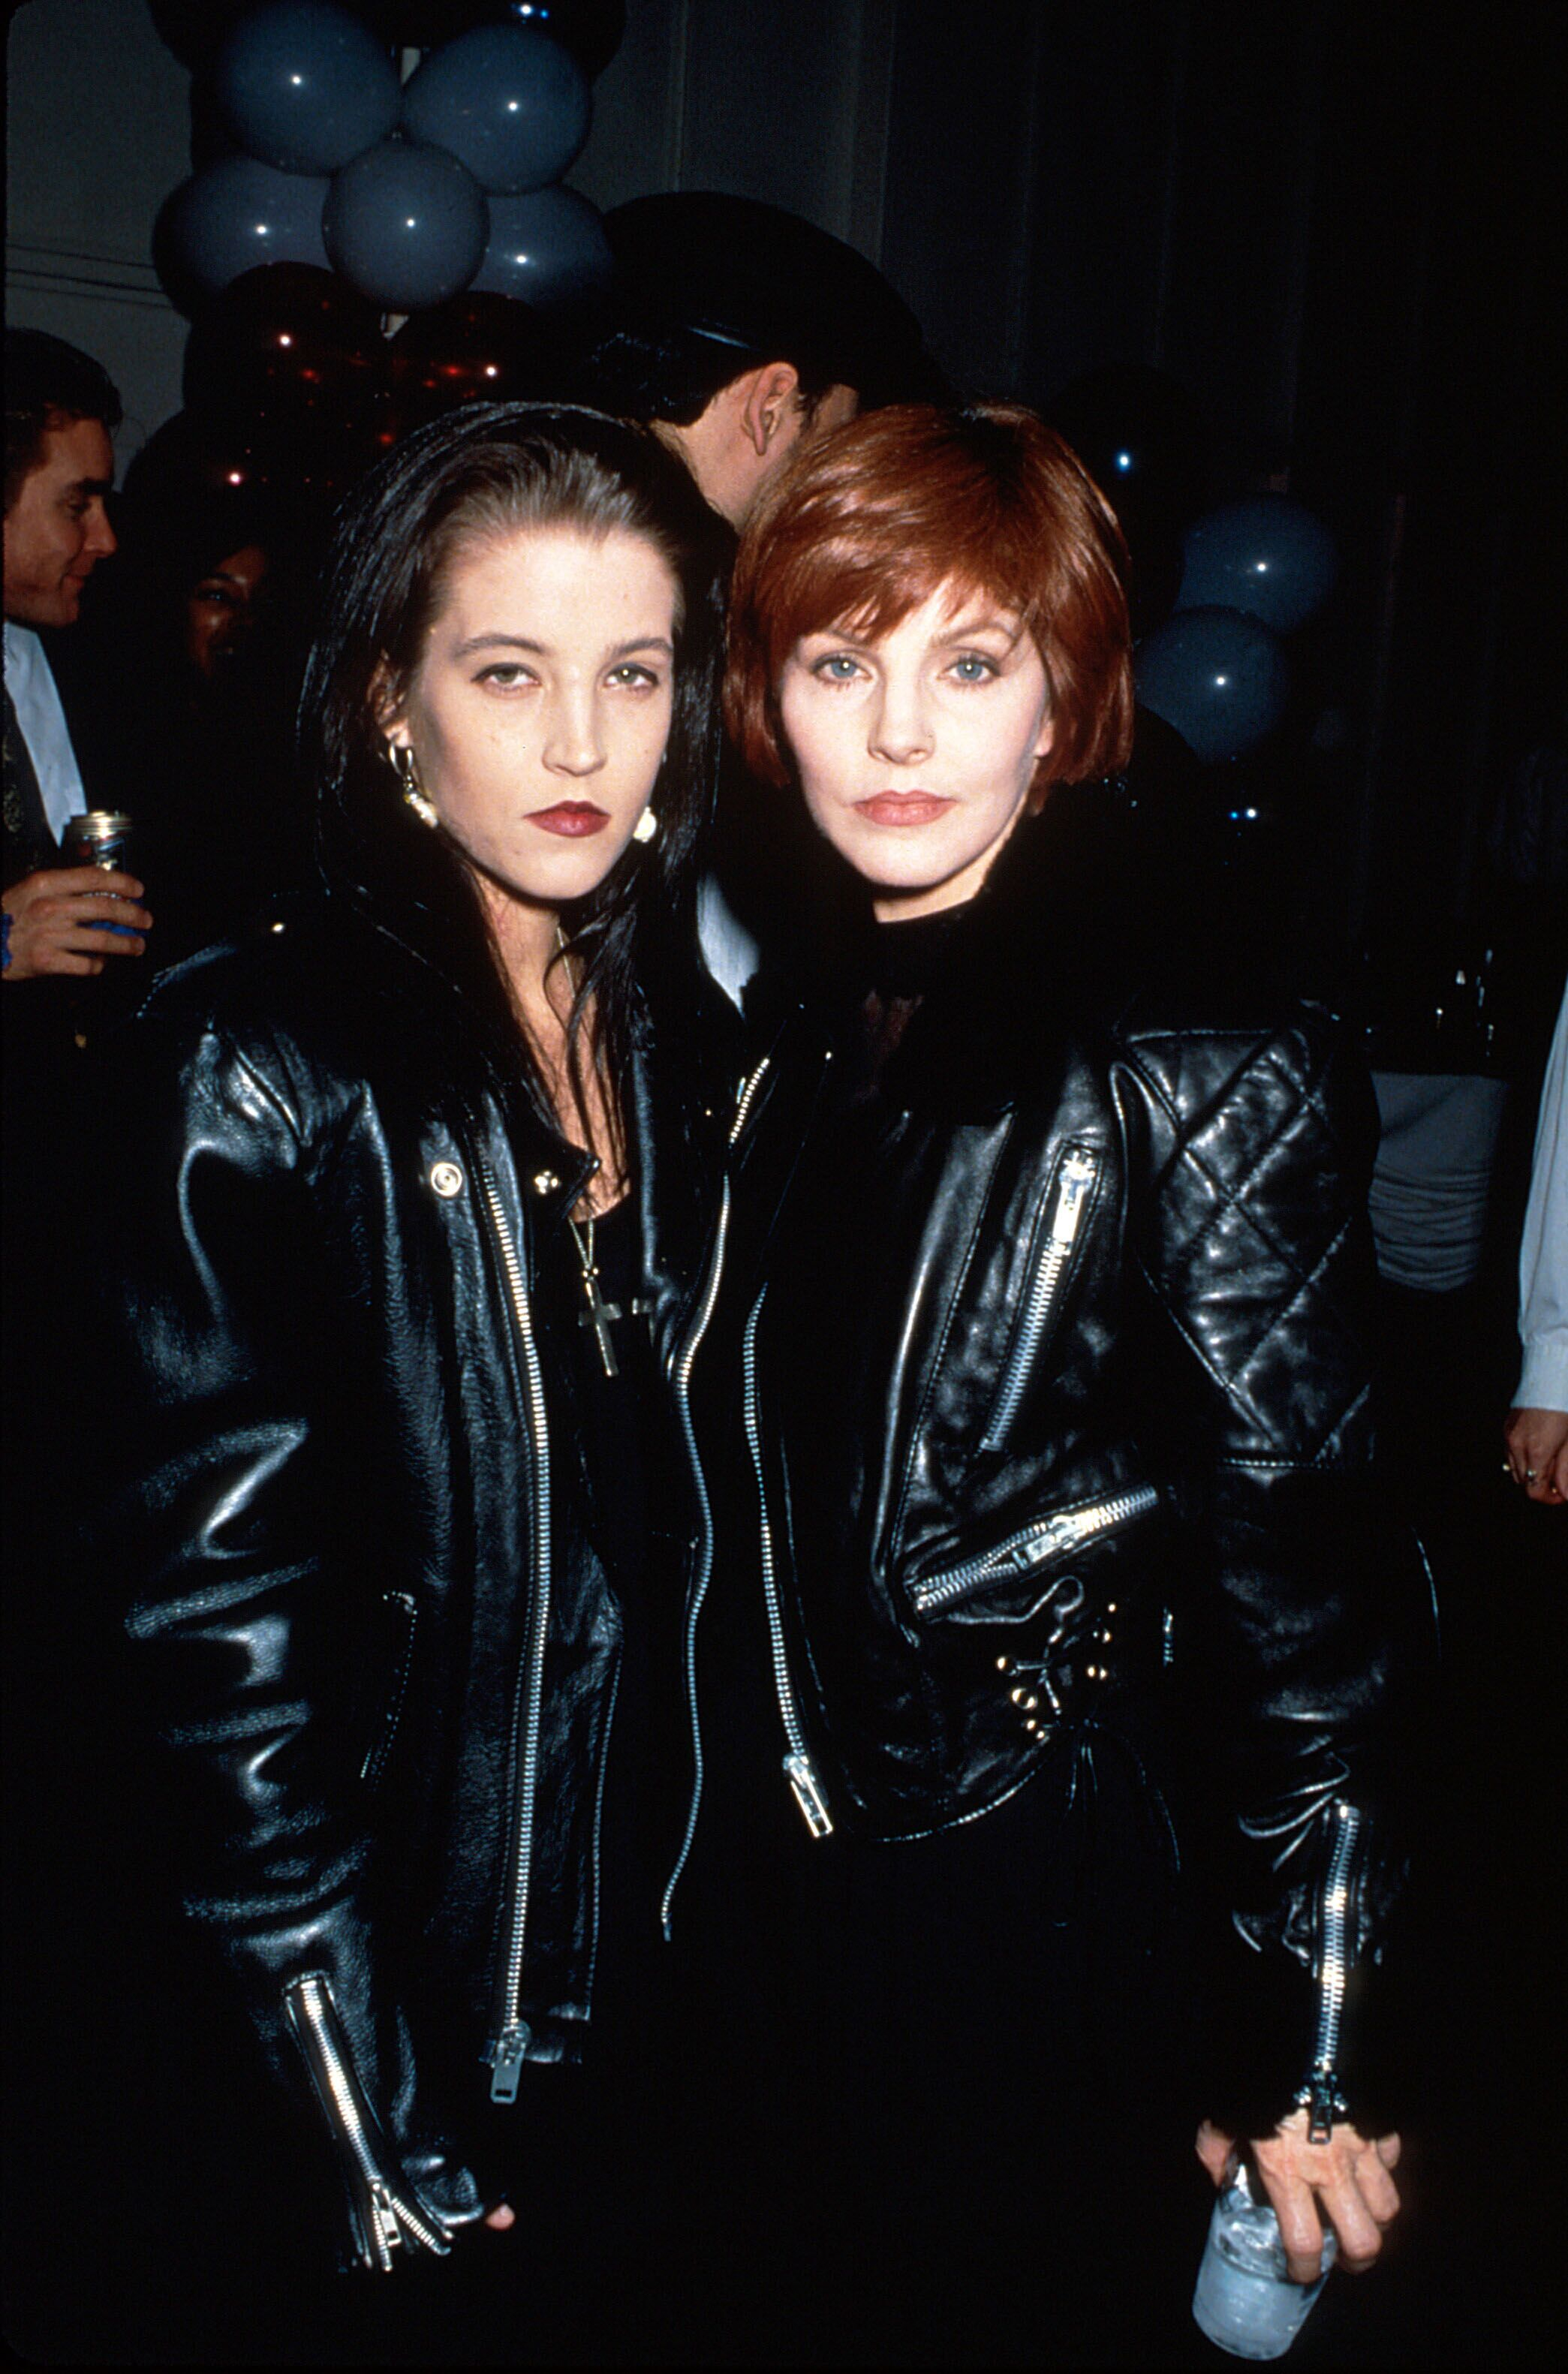 Lisa Marie Presley and mother, actress Priscilla Presley, both wearing Elvis-style black leather jackets | Source: Getty Images